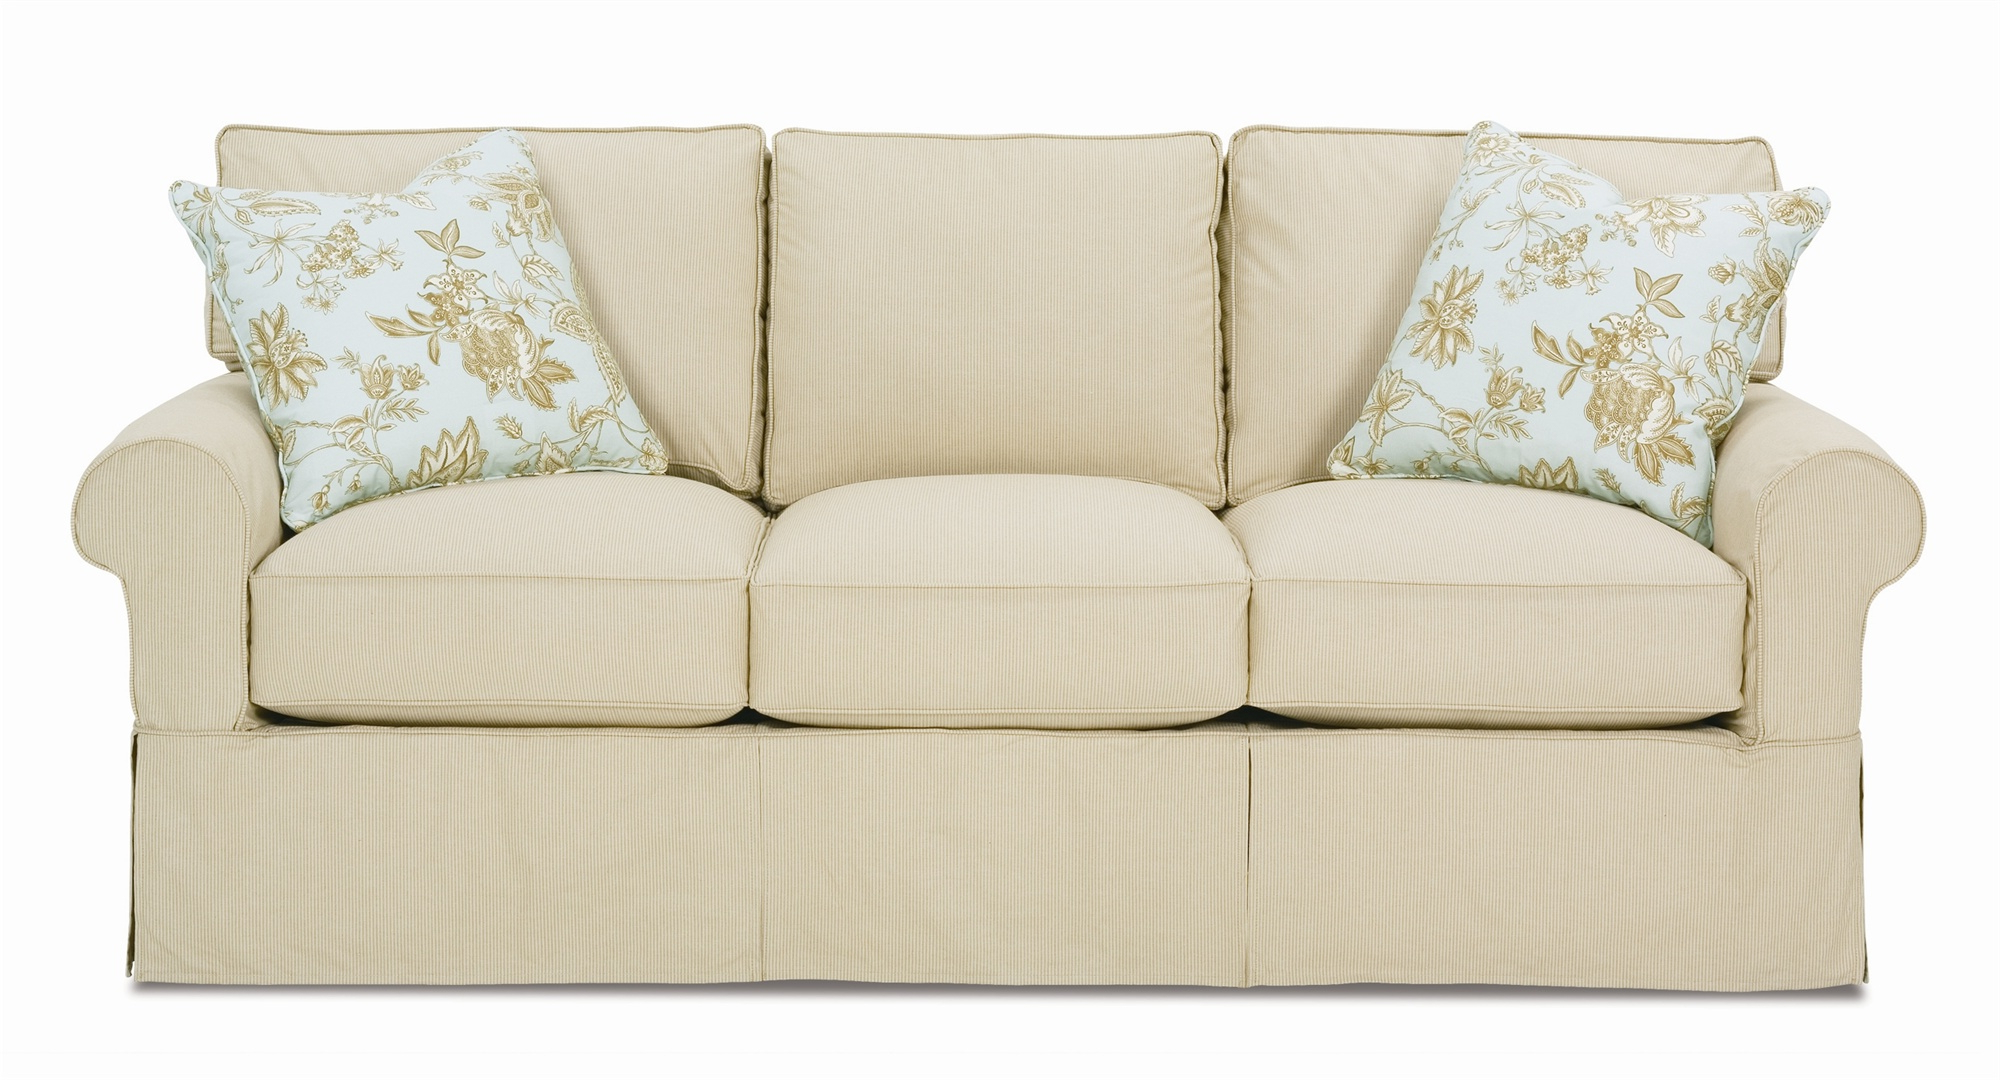 Chair Slipcovers Within Sofa And Chair Slipcovers (Gallery 1 of 20)